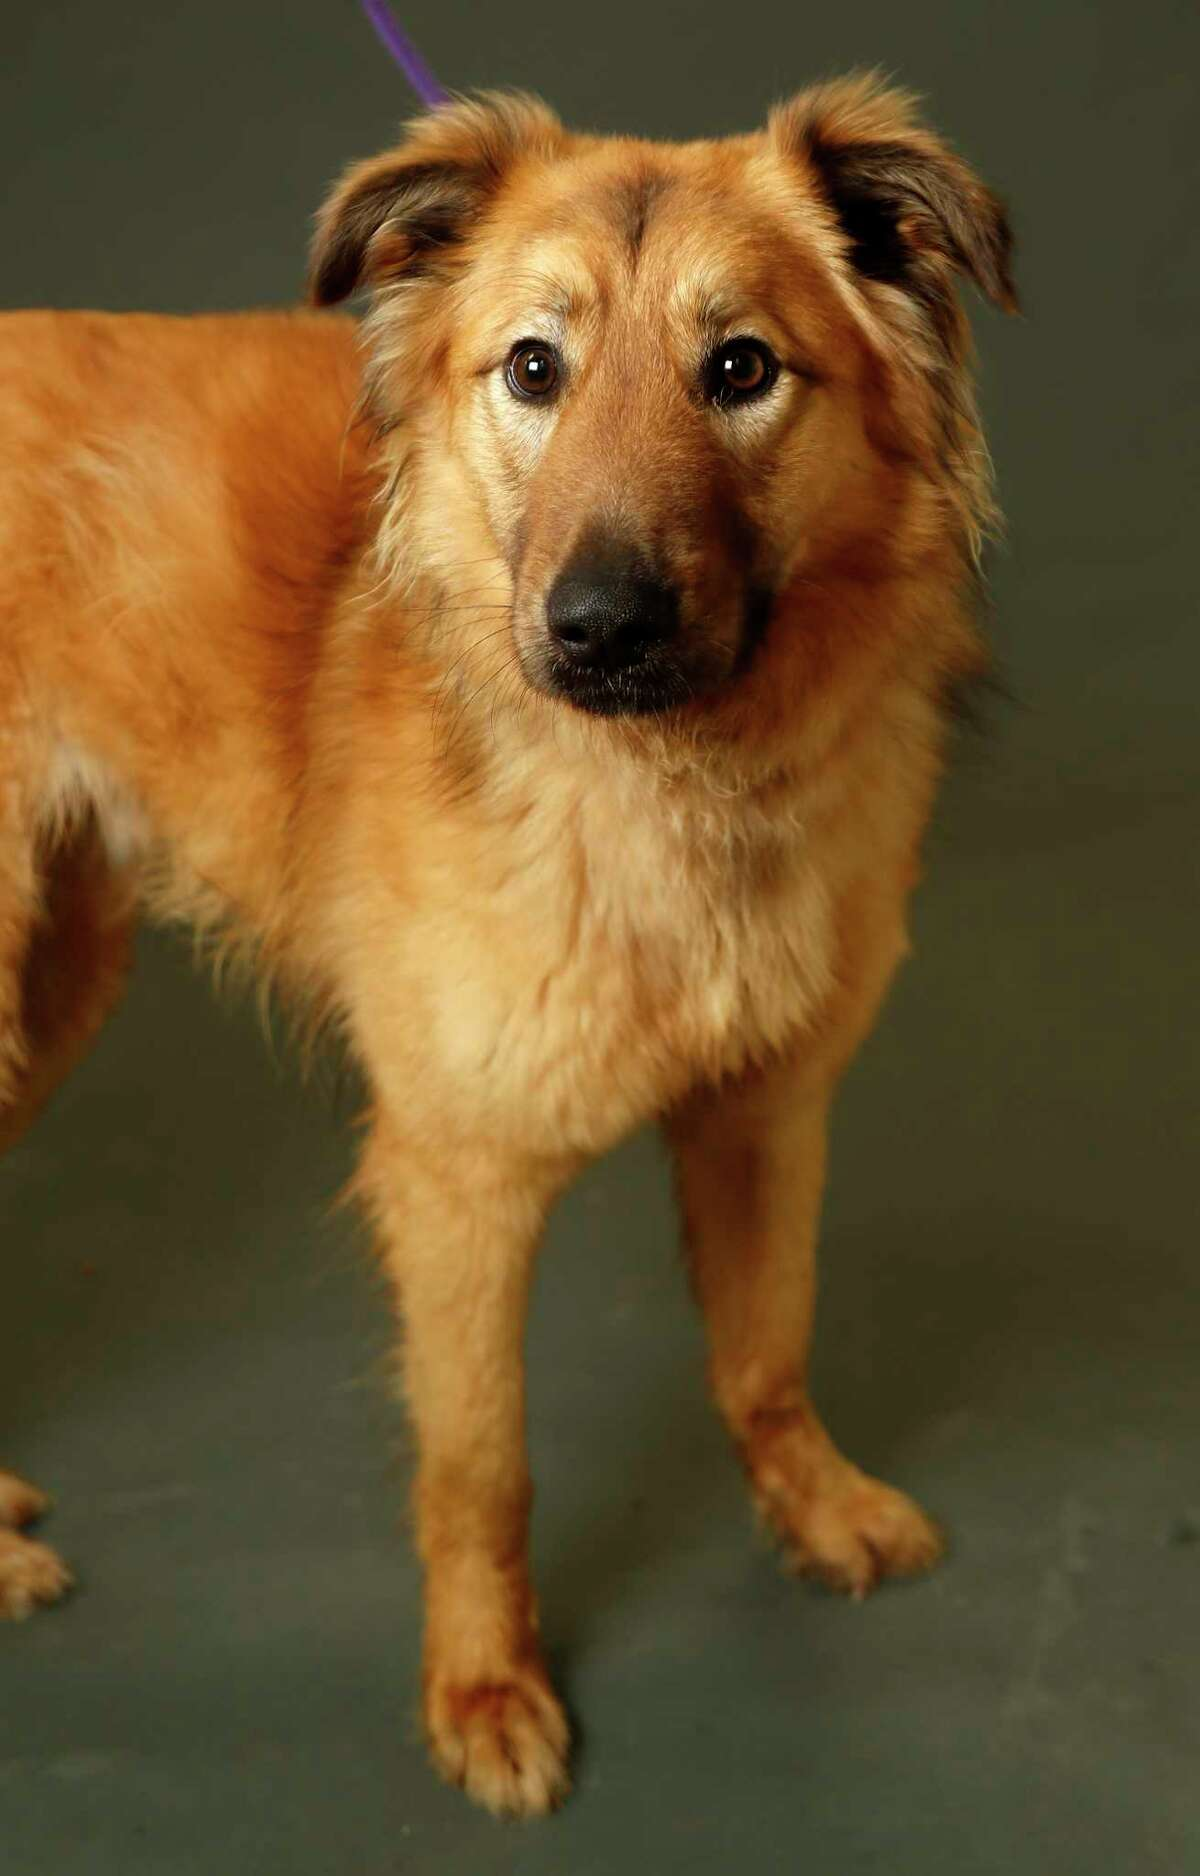 Bashful is a 1-year-old, male, Golden Retriever mix and is ready to be adopted from the Houston Humane Society. (Animal ID: 40728143) Photographed Wednesday, Feb. 20, 2019, in Houston. Bashful is a sweet, friendly dog who loves to go for walks on his leash.